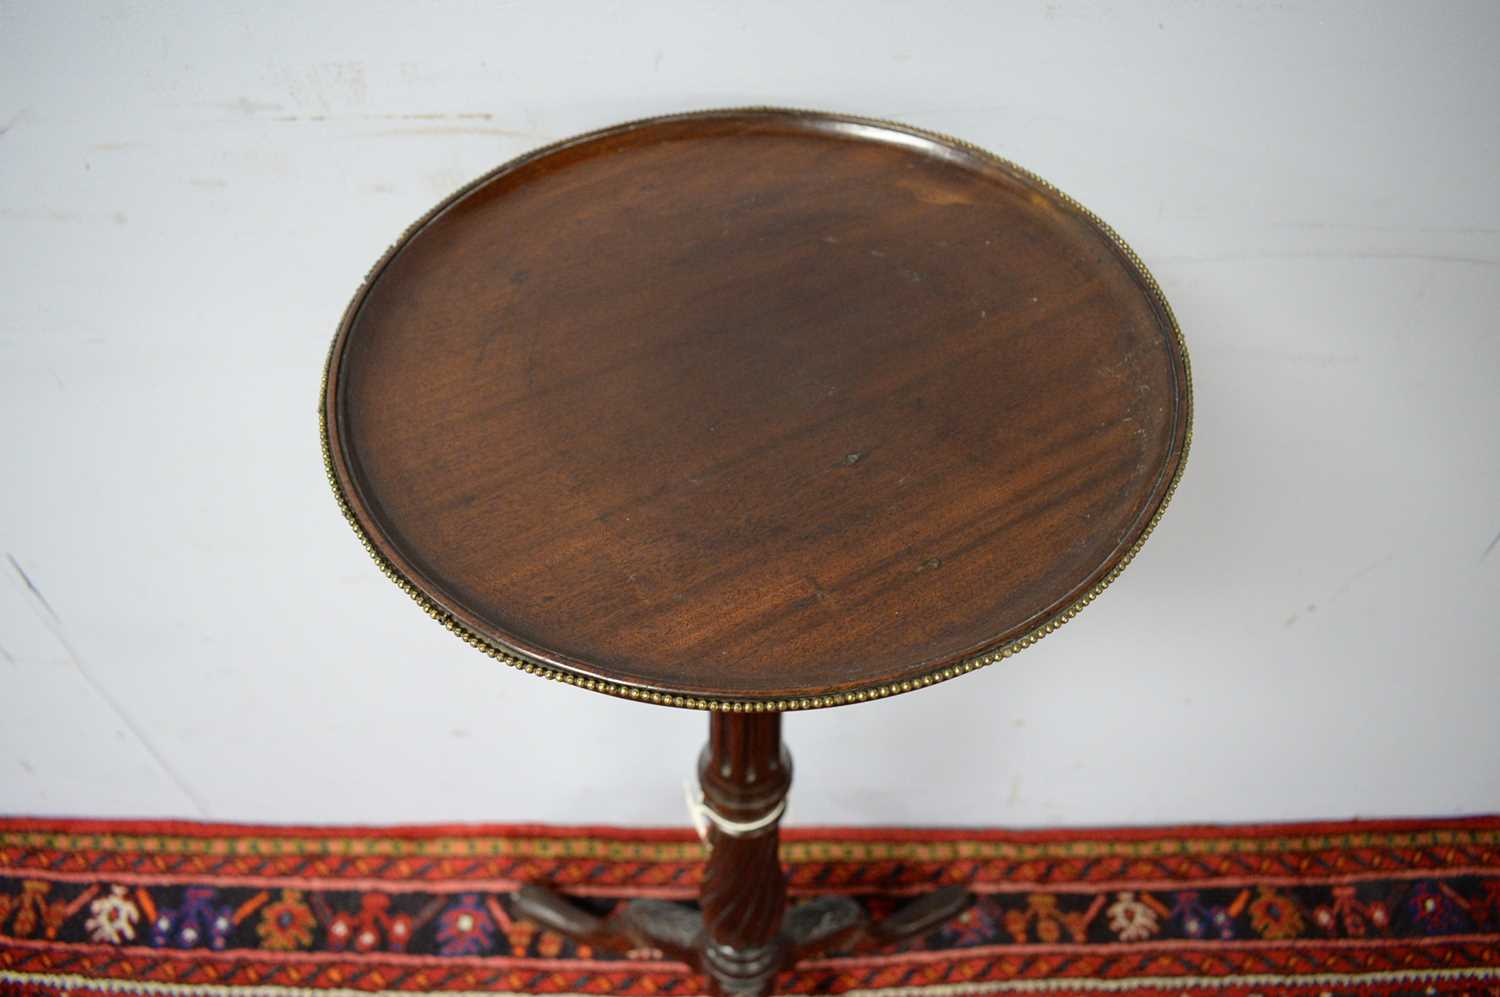 20th C George III style jardiniere stand. - Image 5 of 5